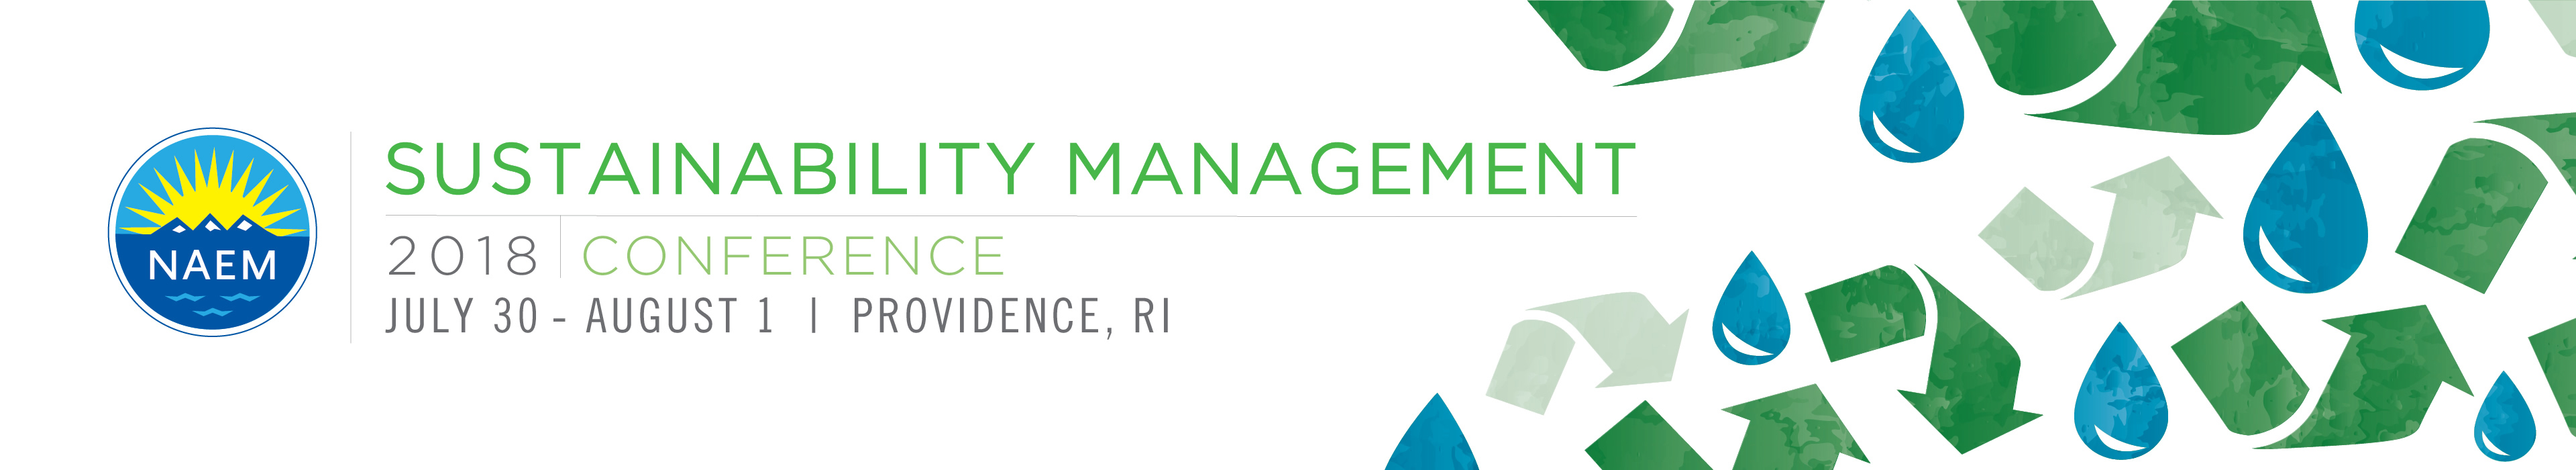 NAEM's 2018 Corporate Sustainability Management Conference